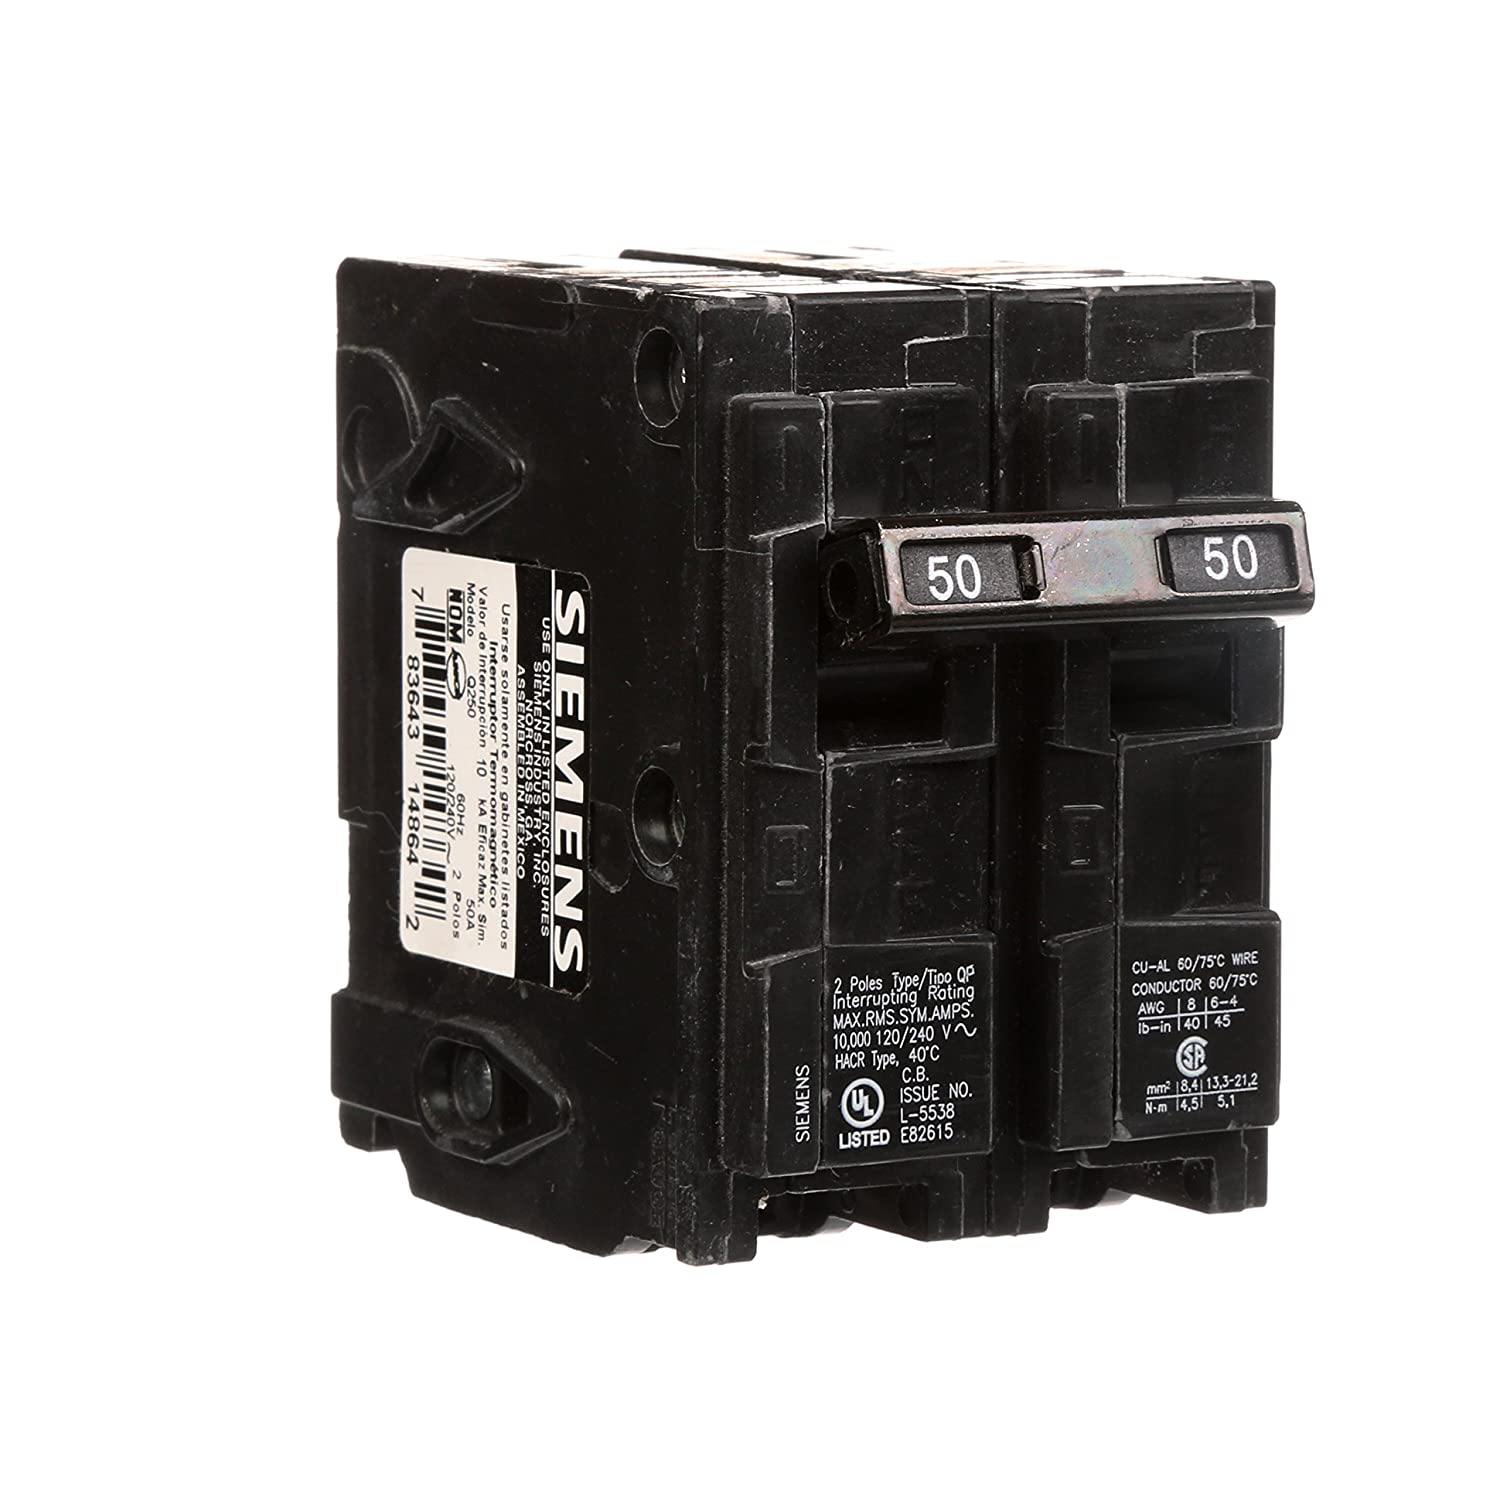 Q250 50-Amp Double Pole Type QP Circuit Breaker - - Amazon.com